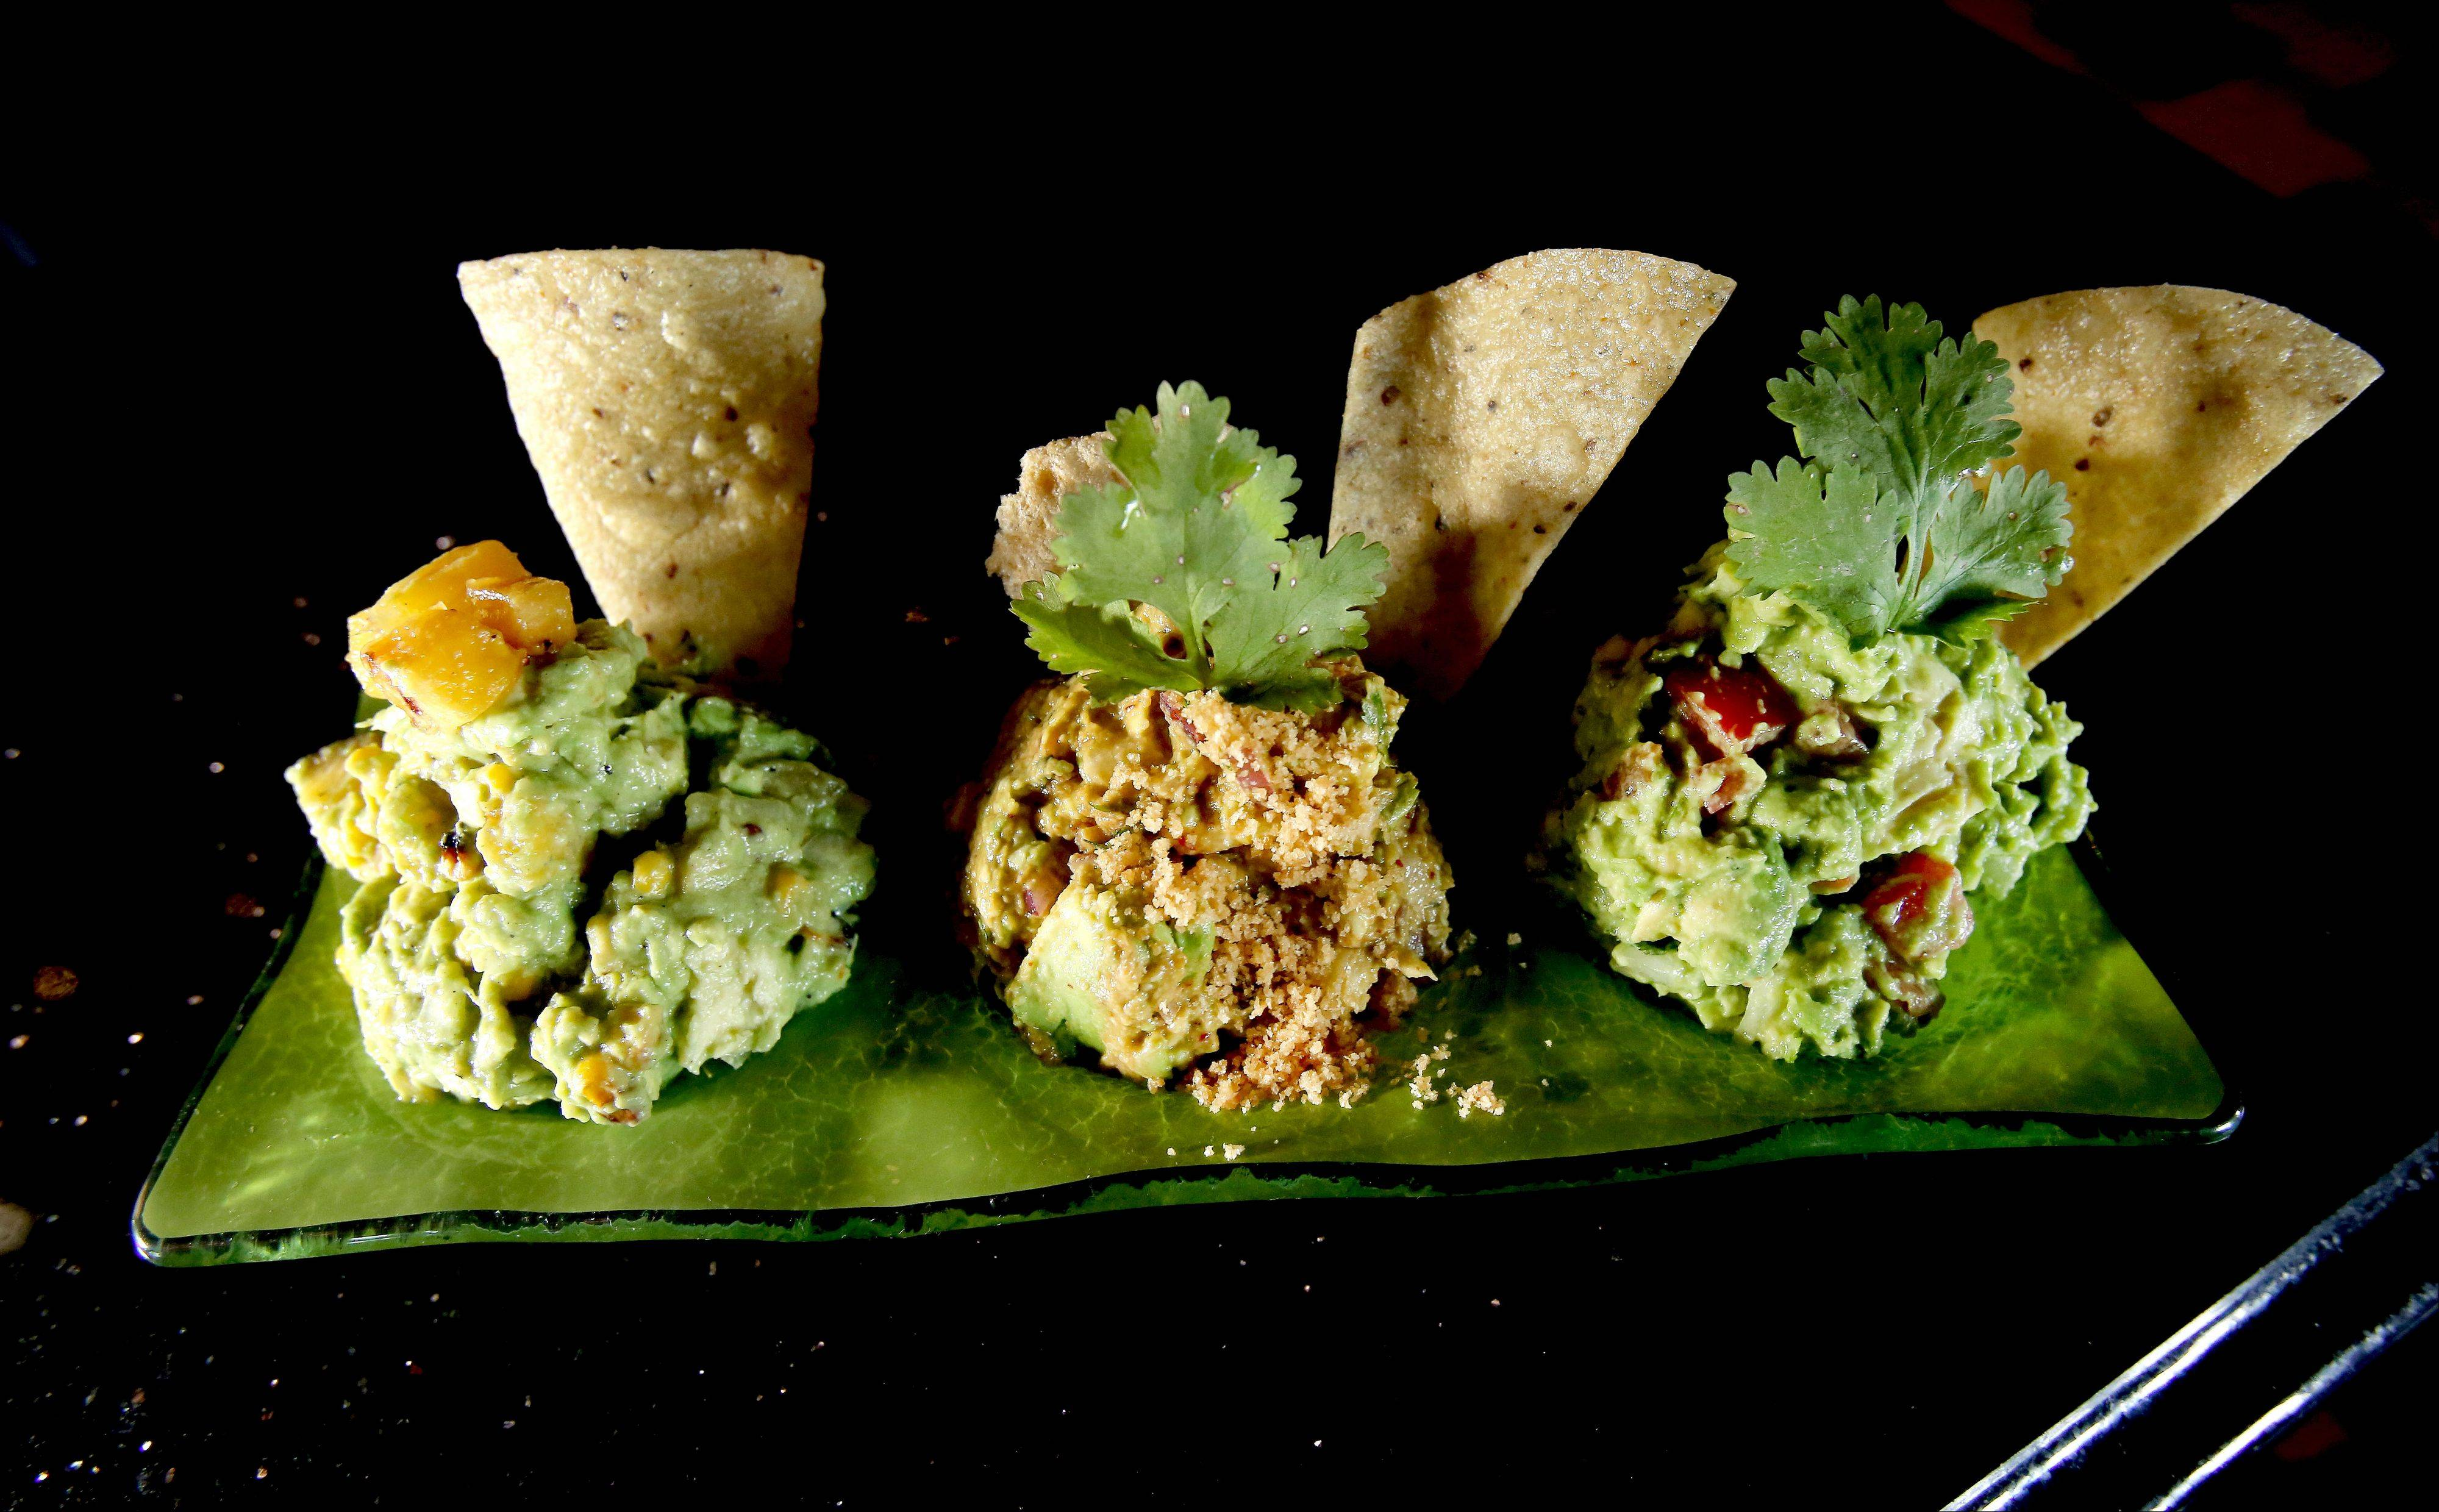 Start things off with Barbakoa's guacamole trio.